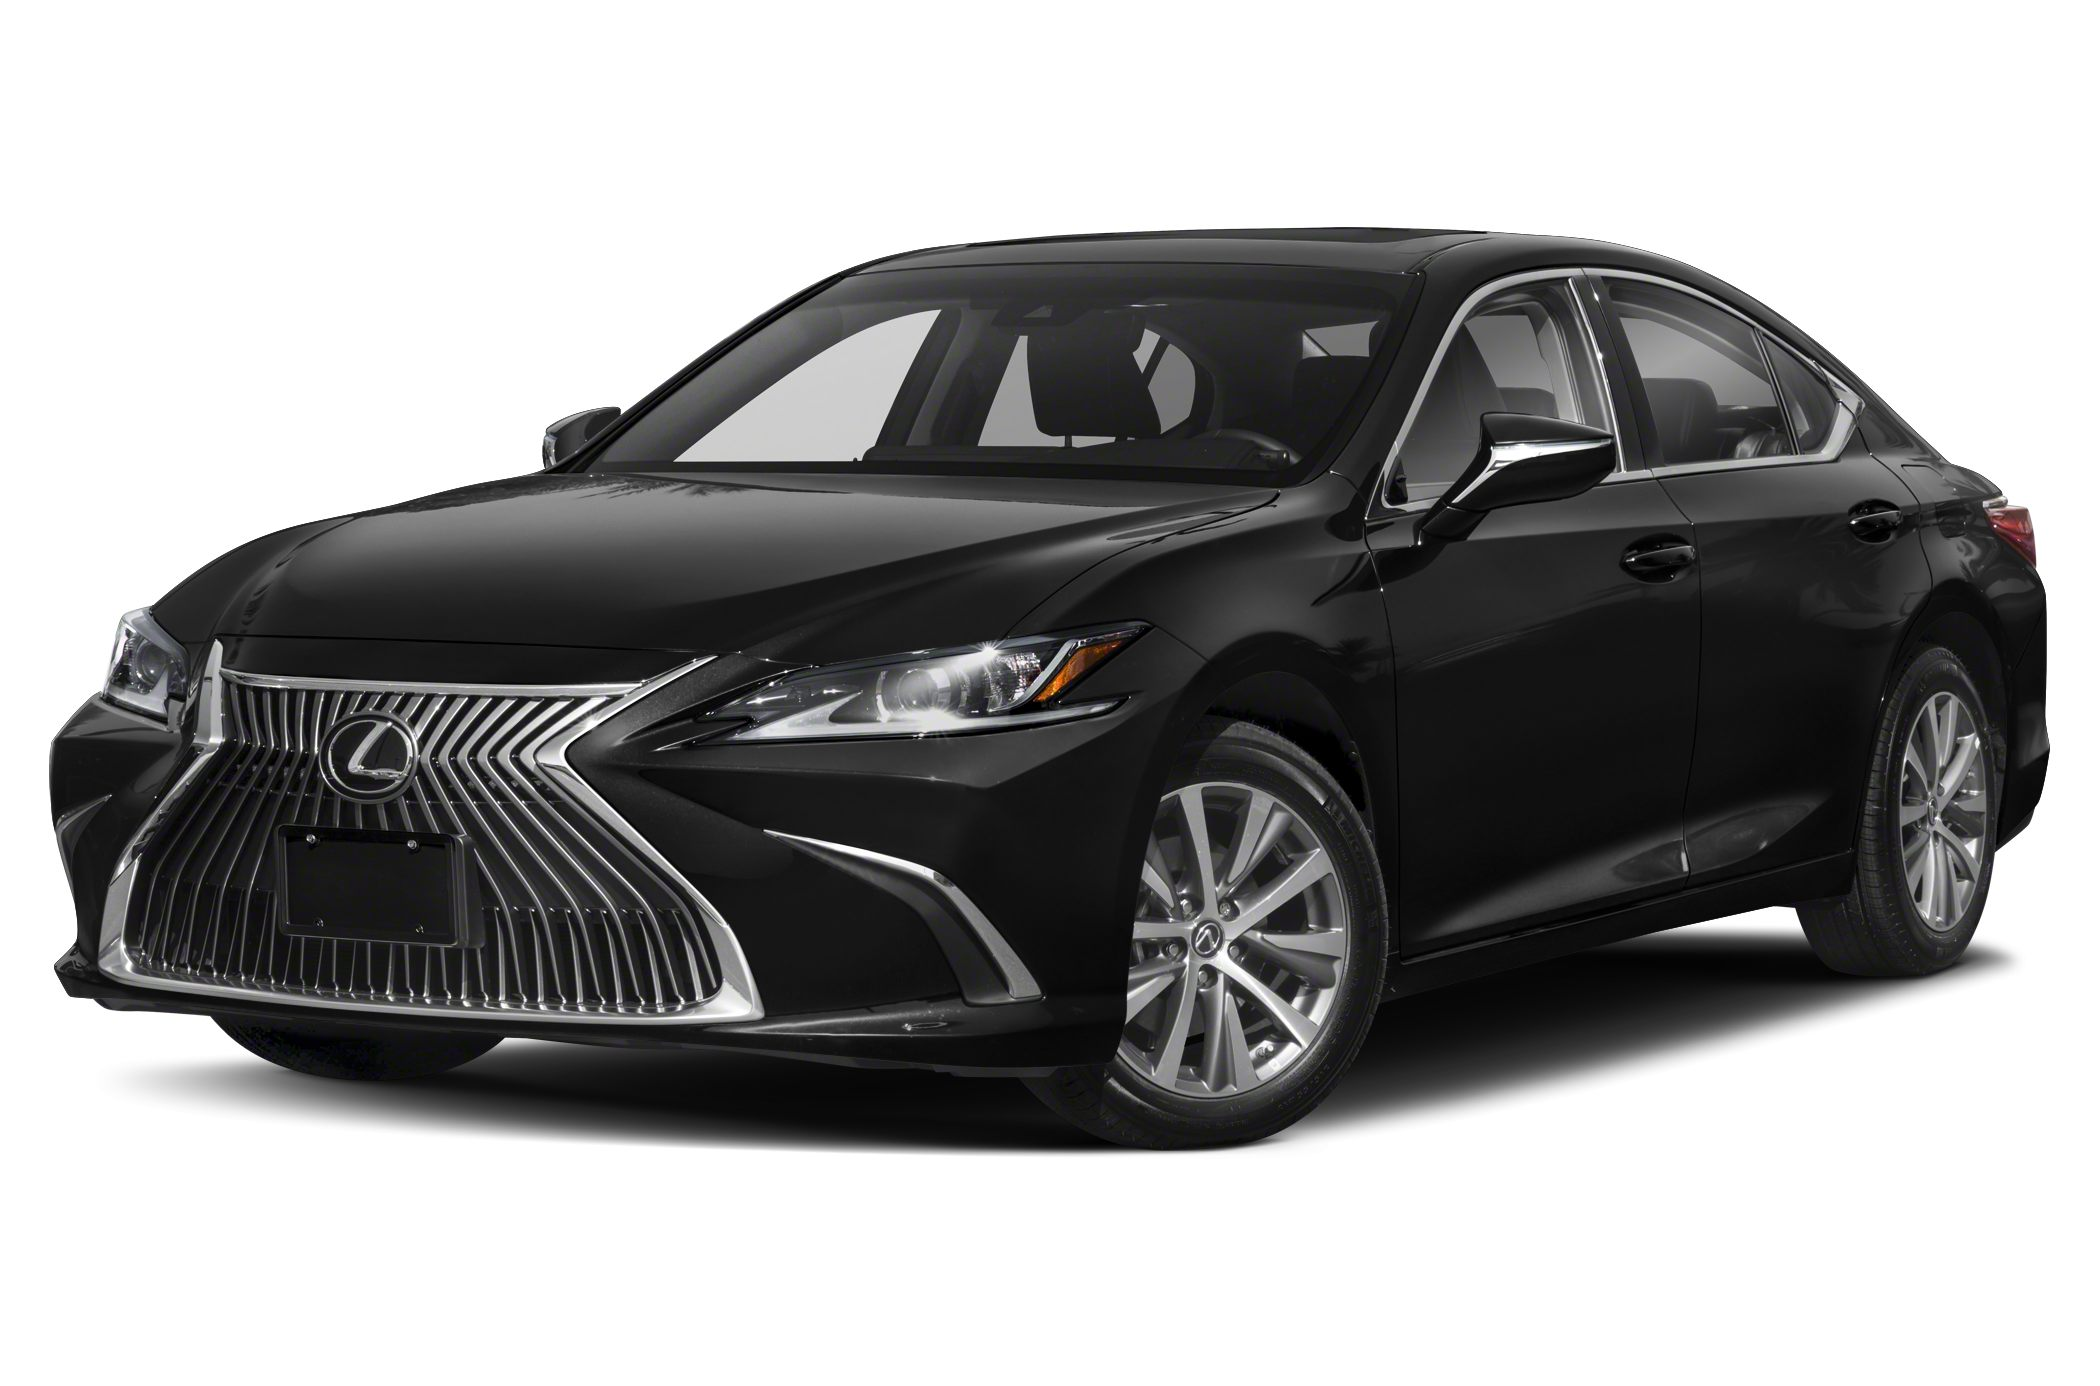 Toyota offered $146.5 million to build Lexus ES in Kentucky